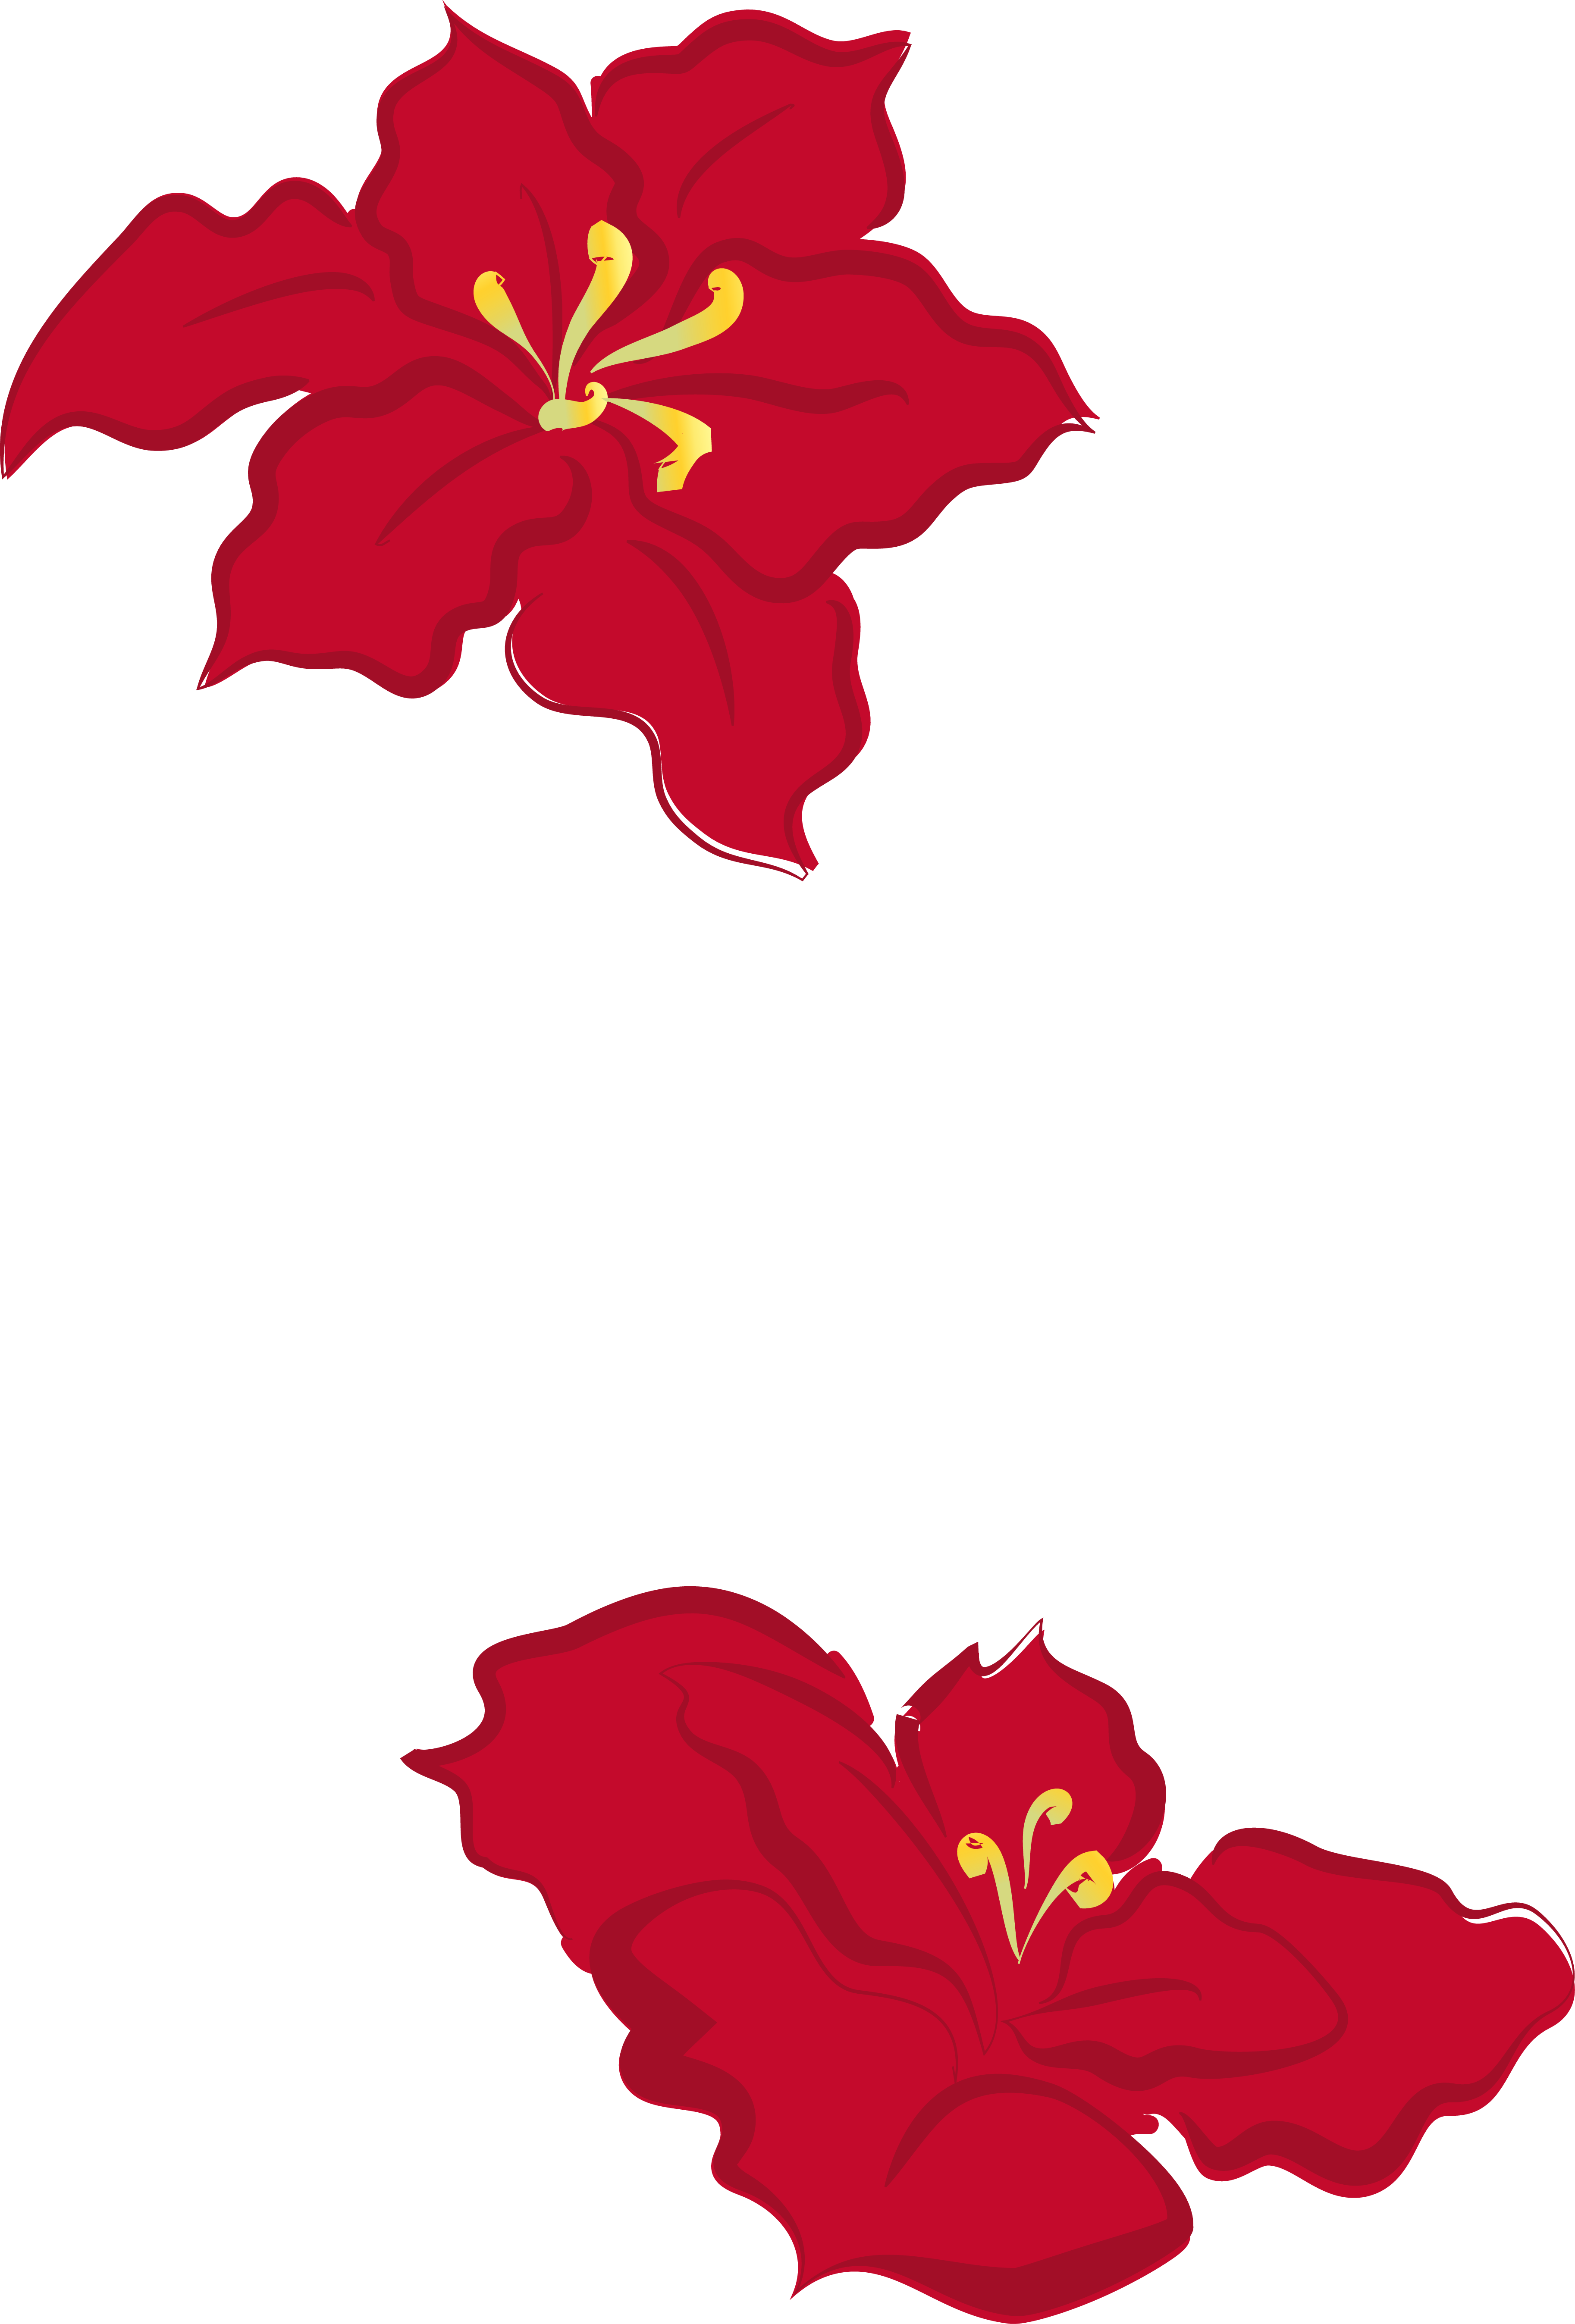 Designed for Christmas decoration with Poinsettia leaf flowers. This ...